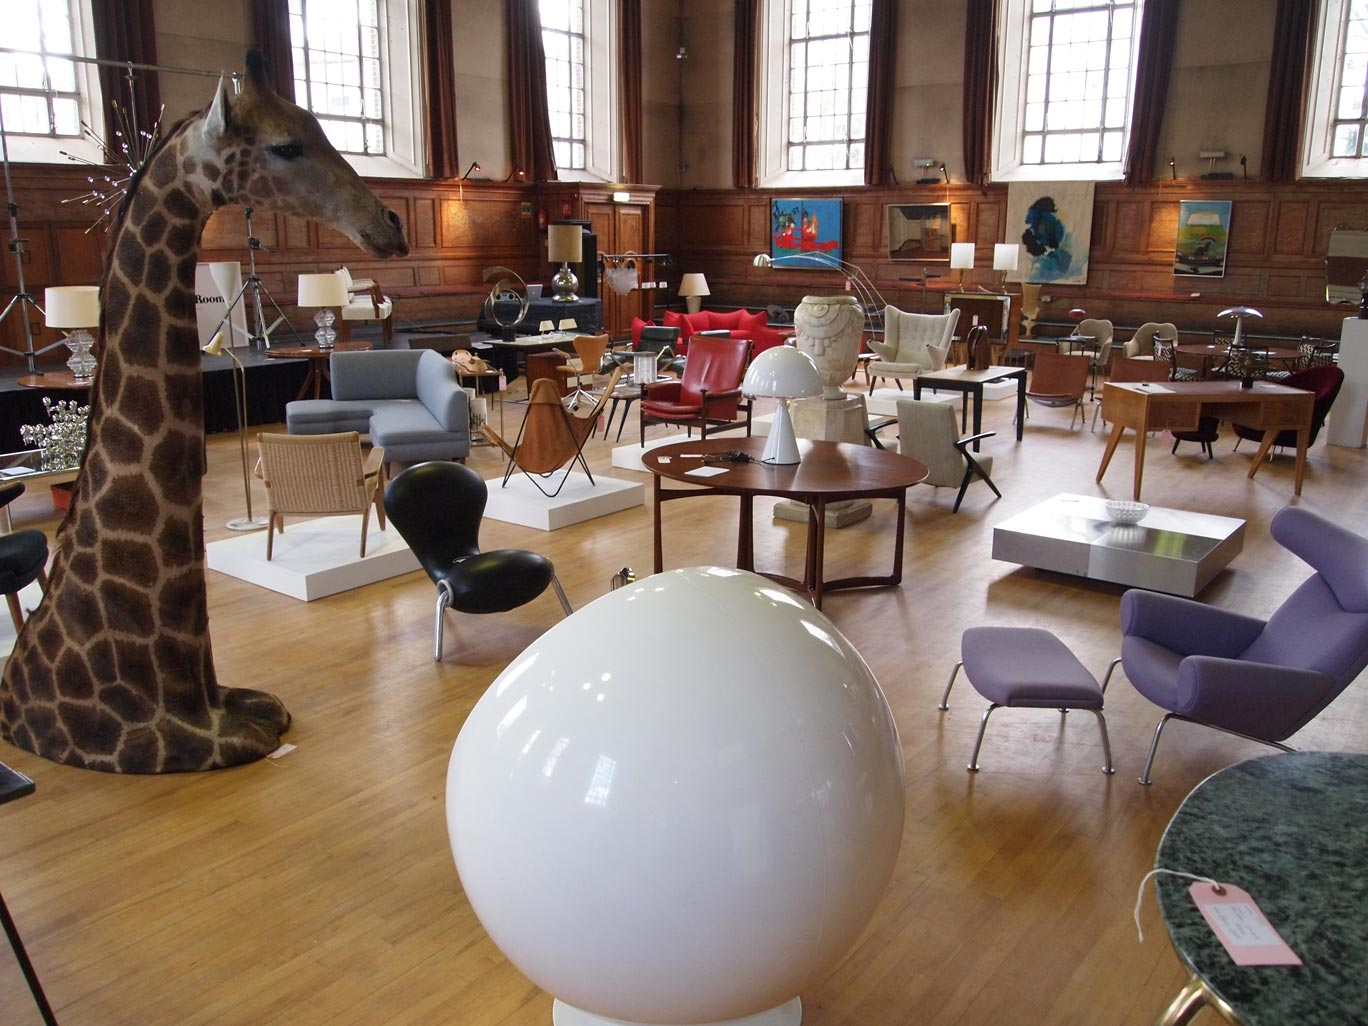 The Cabinet Rooms - an auction of mid century furniture art and design.